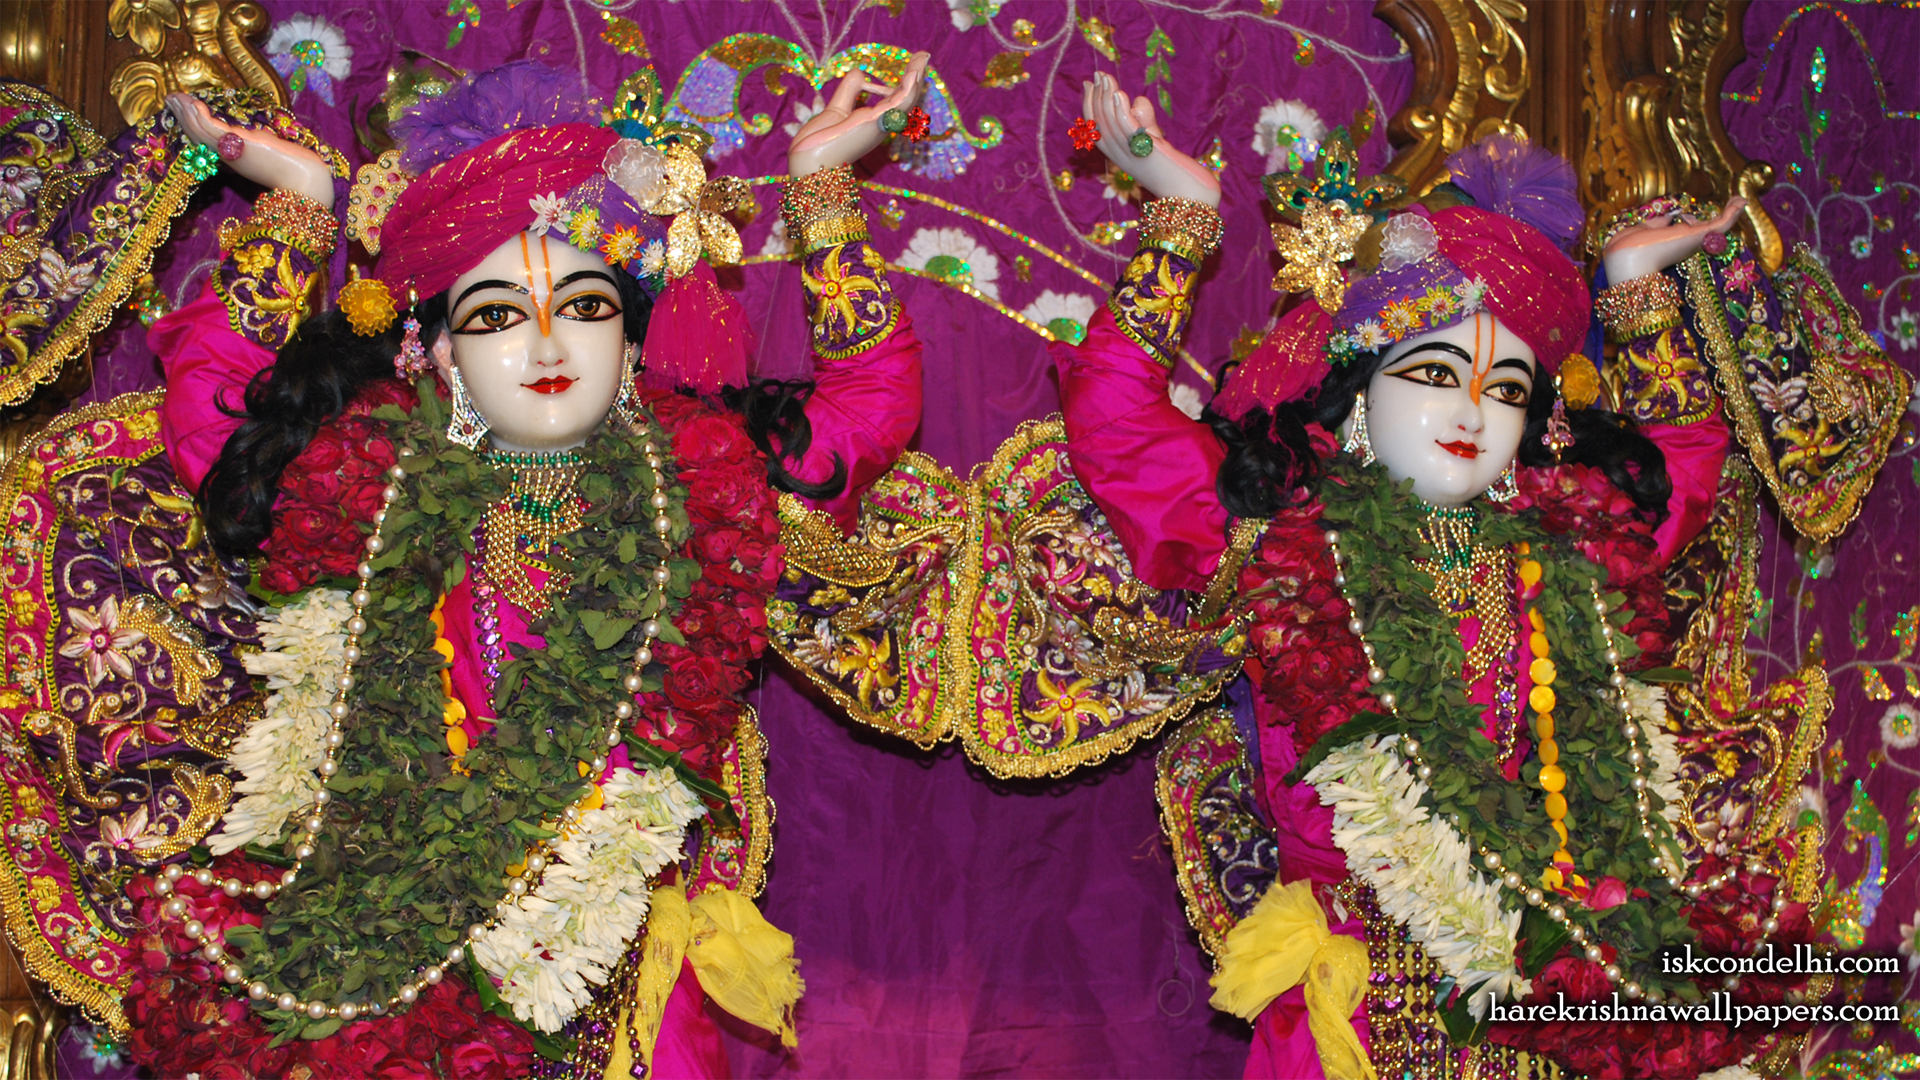 Sri Sri Gaura Nitai Close up Wallpaper (003) Size 1920x1080 Download